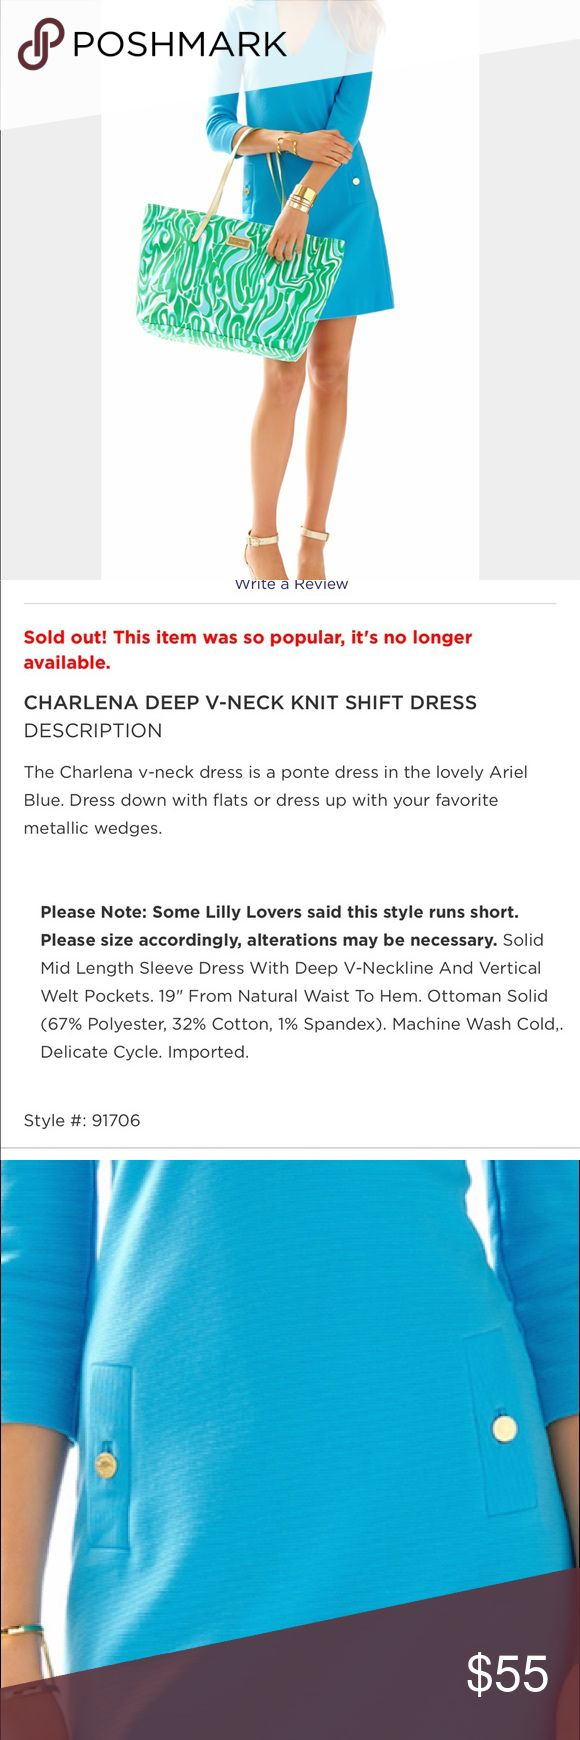 Lily Pulitzer Charlena Knit Shift Dress CHARLENA DEEP V-NECK KNIT SHIFT DRESS IN ARIEL BLUE. Worn once so tags removed. Please see picture for measurements and materials. I'm 5'4 and 120 lbs. Lilly Pulitzer Dresses Midi